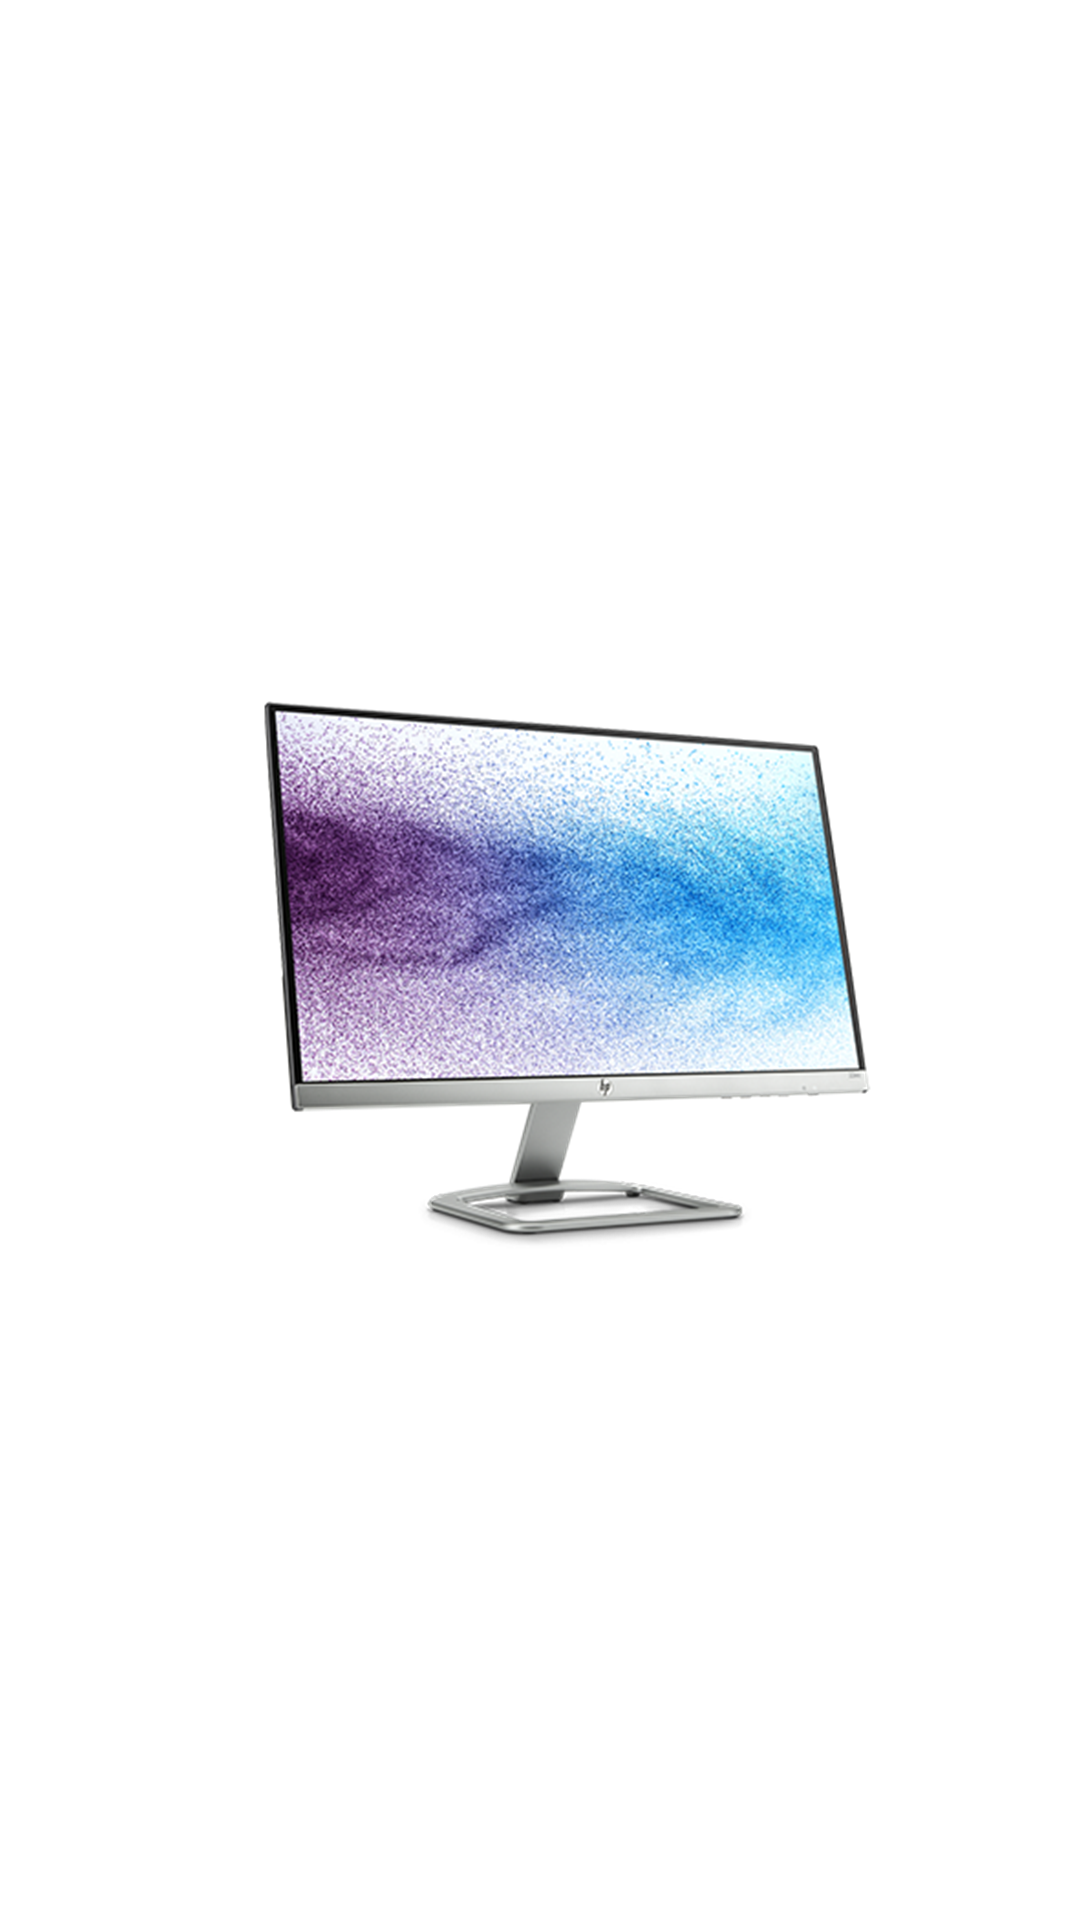 HP 22es (T3M70AA) 21.5 inch LED Monitor